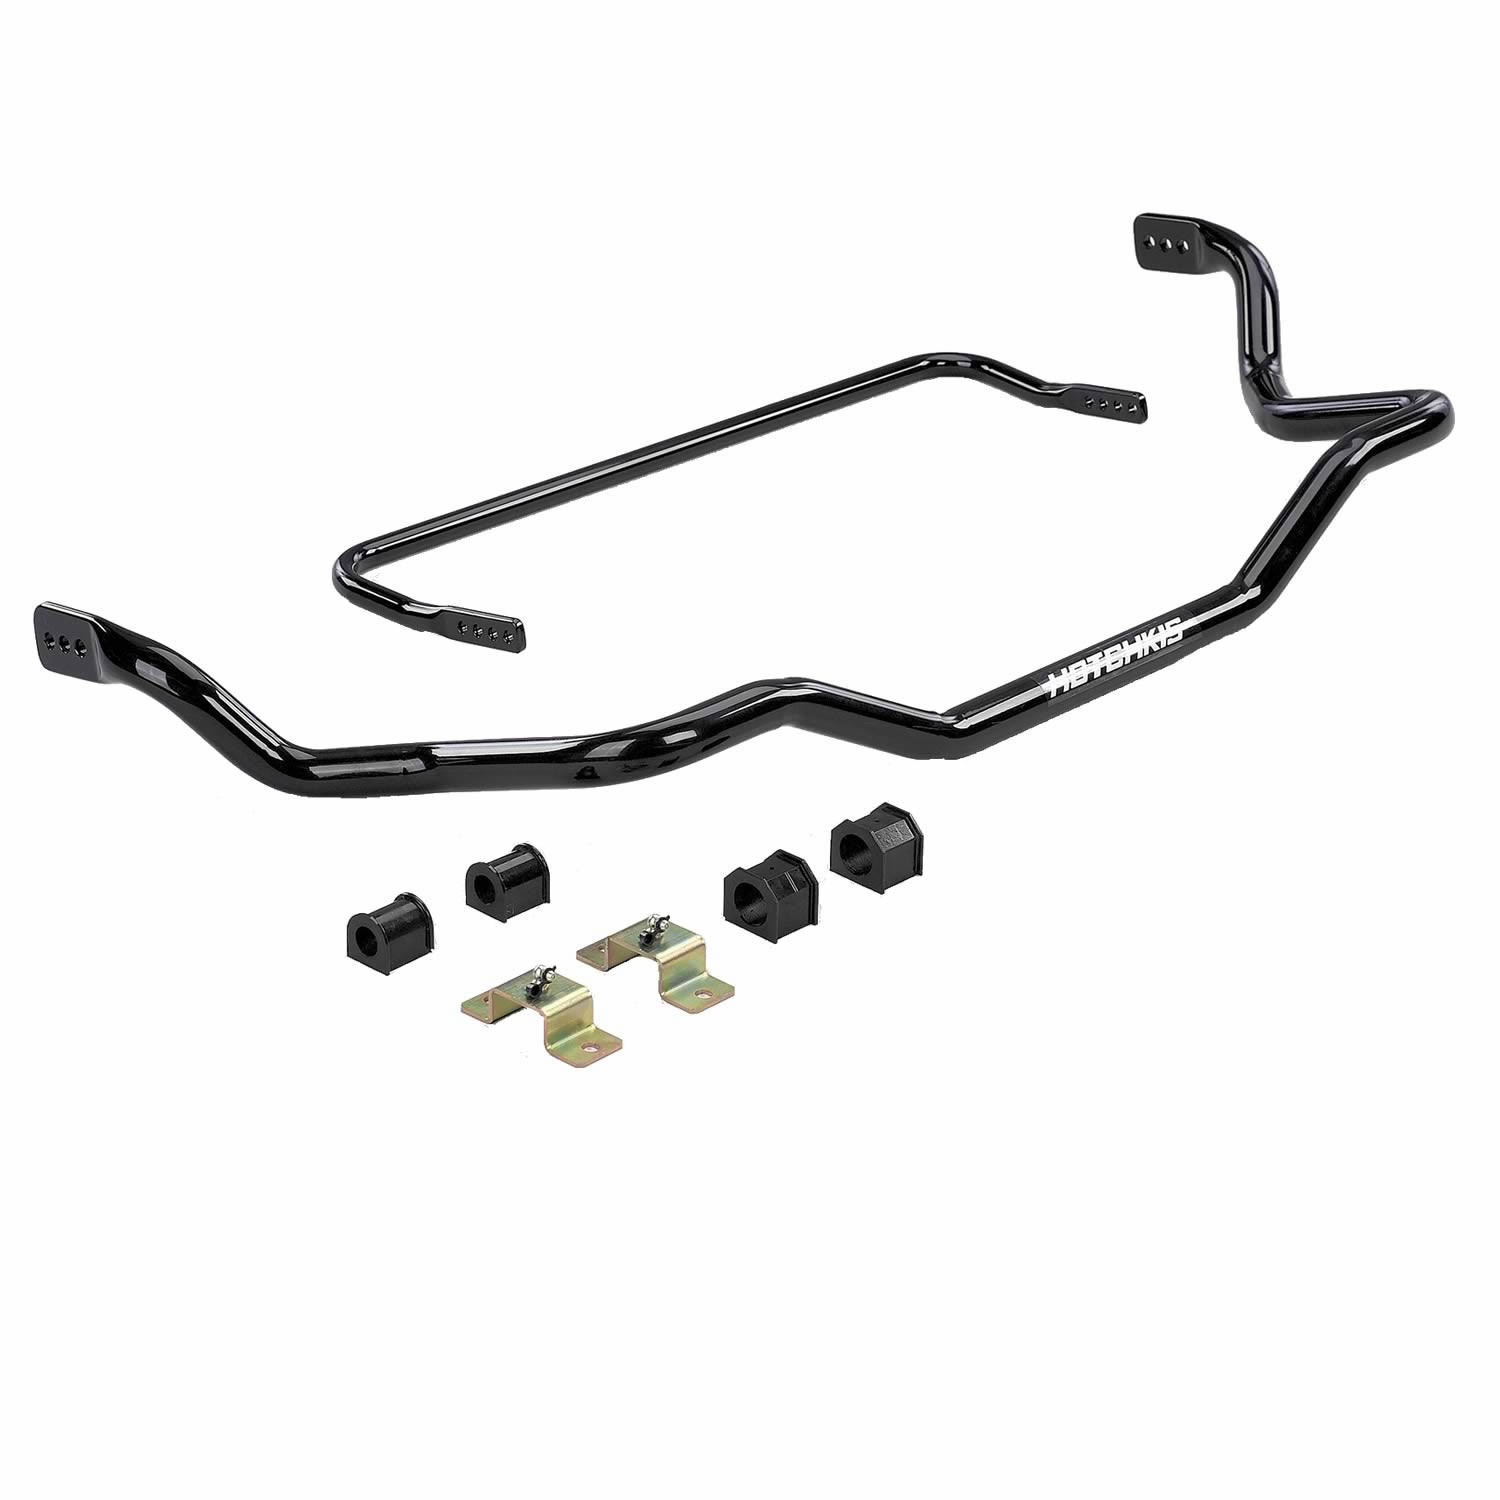 2004-2006 Pontiac GTO Sport Sway Bars from Hotchkis Sport Suspension